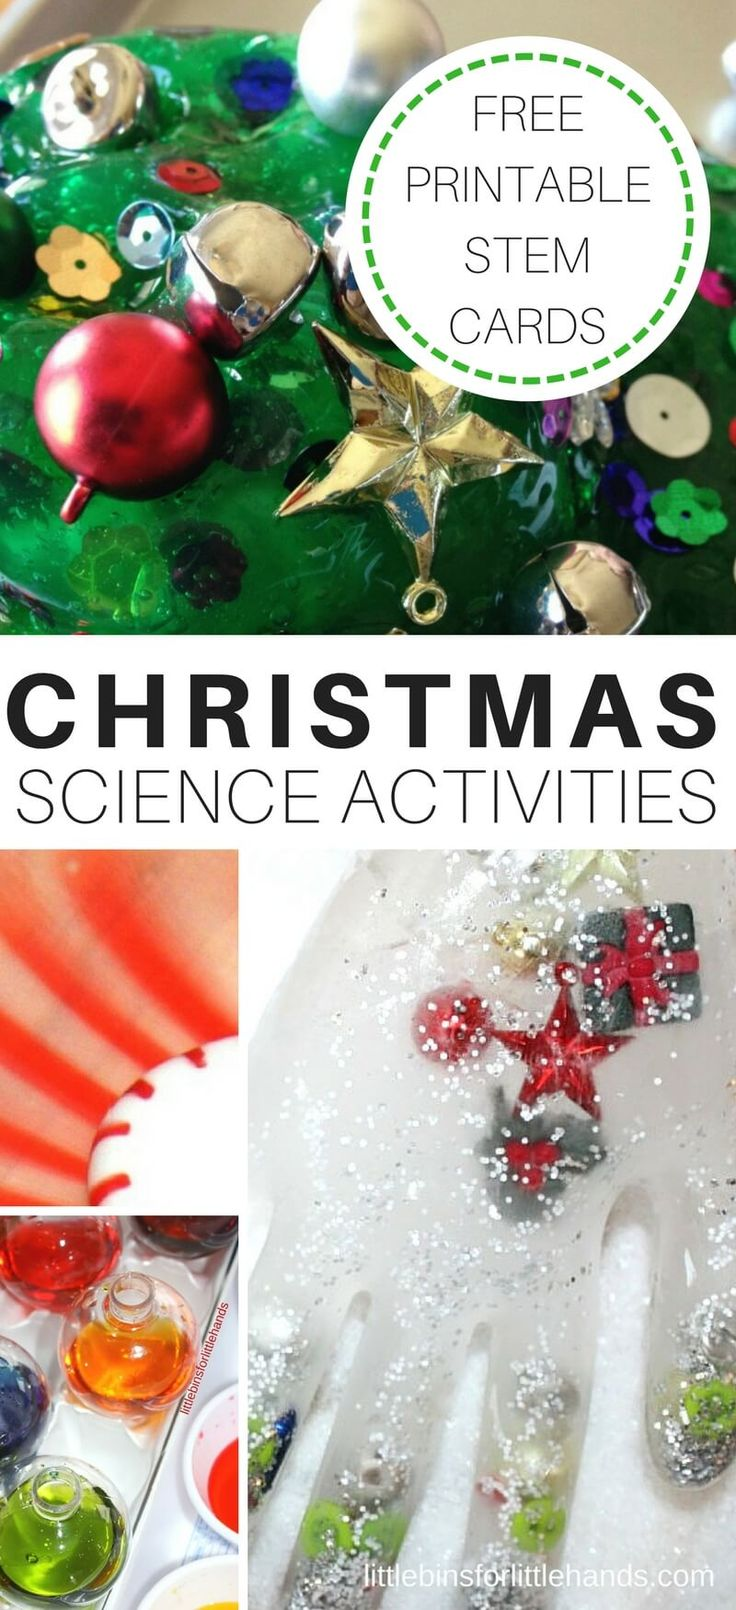 Christmas science activities, Christmas STEM challenges, and Christmas slime recipes for kids. Our Christmas science experiments include gingerbread man activities, Christmas tree activities, Candy cane activities, and more! Christmas chemistry and Christmas physics are easy and fun to try with our simple to set up Christmas science activities. Also included is free printable STEM challenge cards for a Christmas science countdown idea!